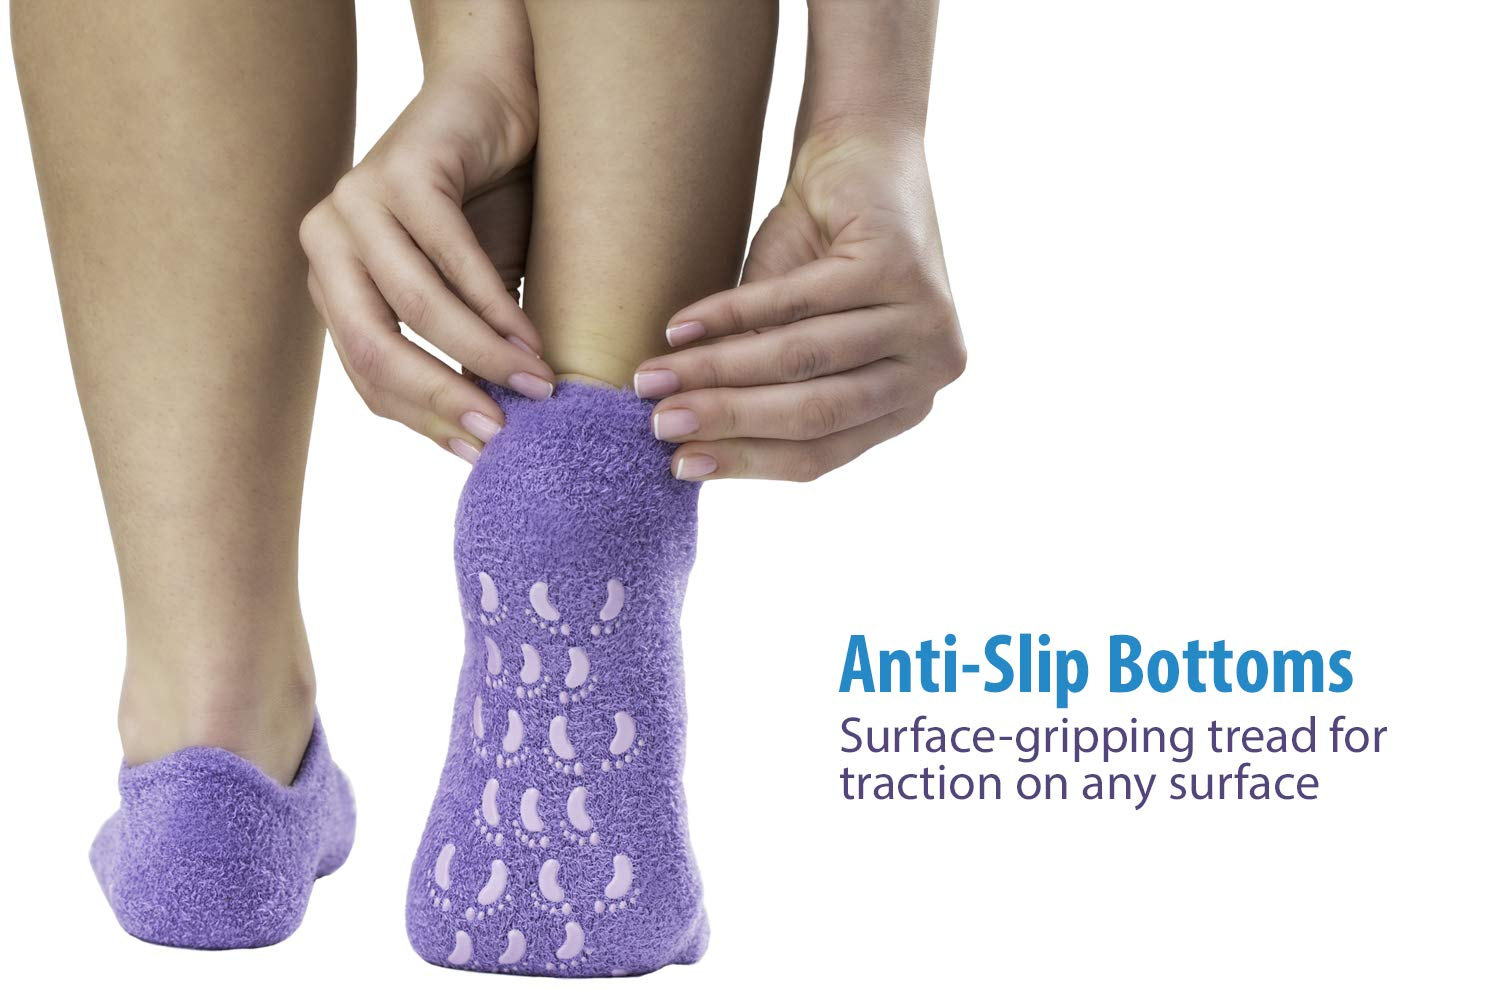 NatraCure Moisturizing Gel Socks - (Helps Dry Feet, Cracked Heels, Dry Heels, Rough Calluses, Cuticles, Dead Skin, Use with your Favorite Lotions, Creams or Spa Pedicure) - Color: Lavender : Beauty